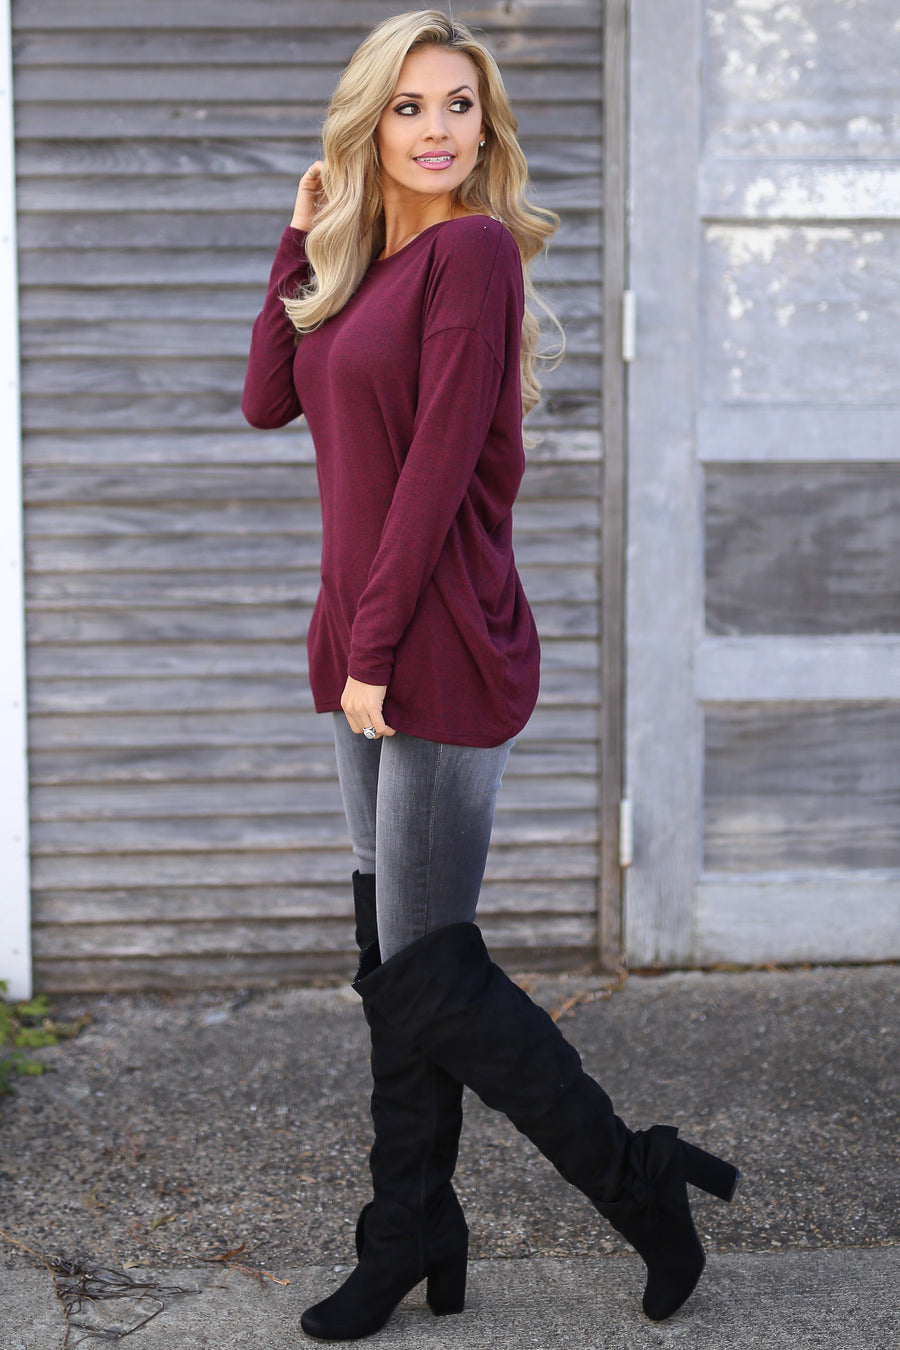 Full Moon Over-the-Knee Boots - Black suede over the knee heeled boots, side, Closet Candy Boutique